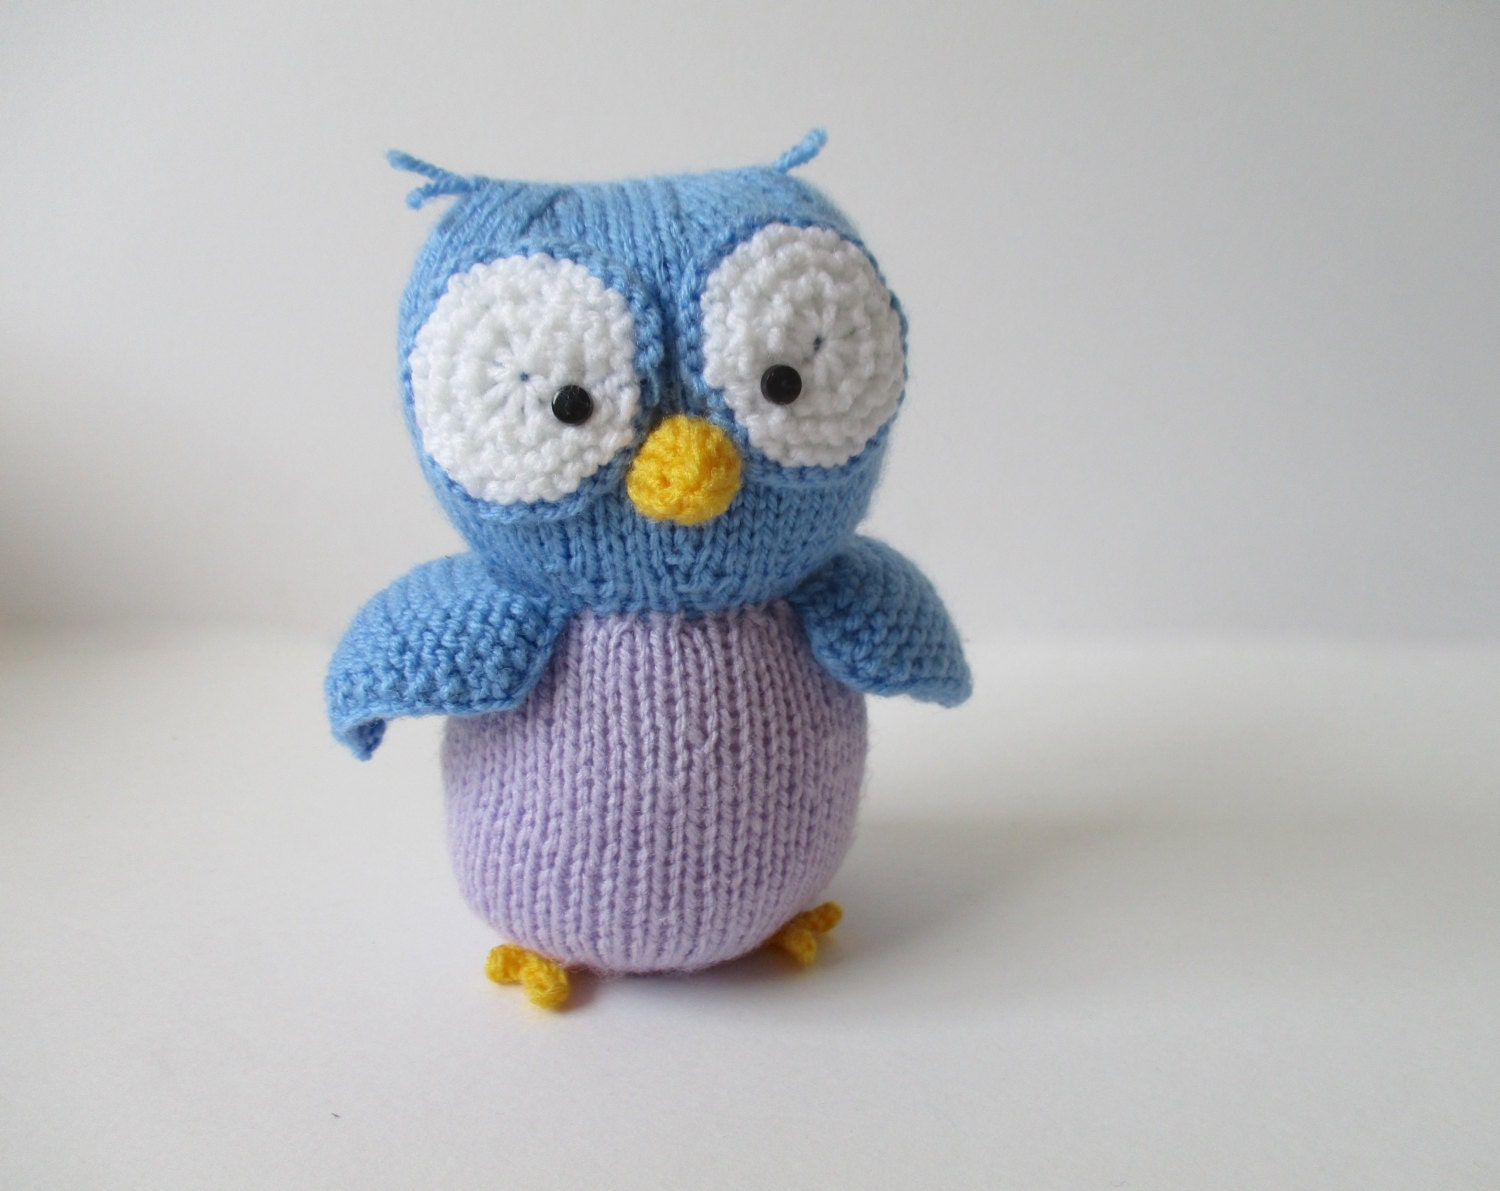 Disney Knitting Patterns Free : Hoots the Owl toy knitting pattern